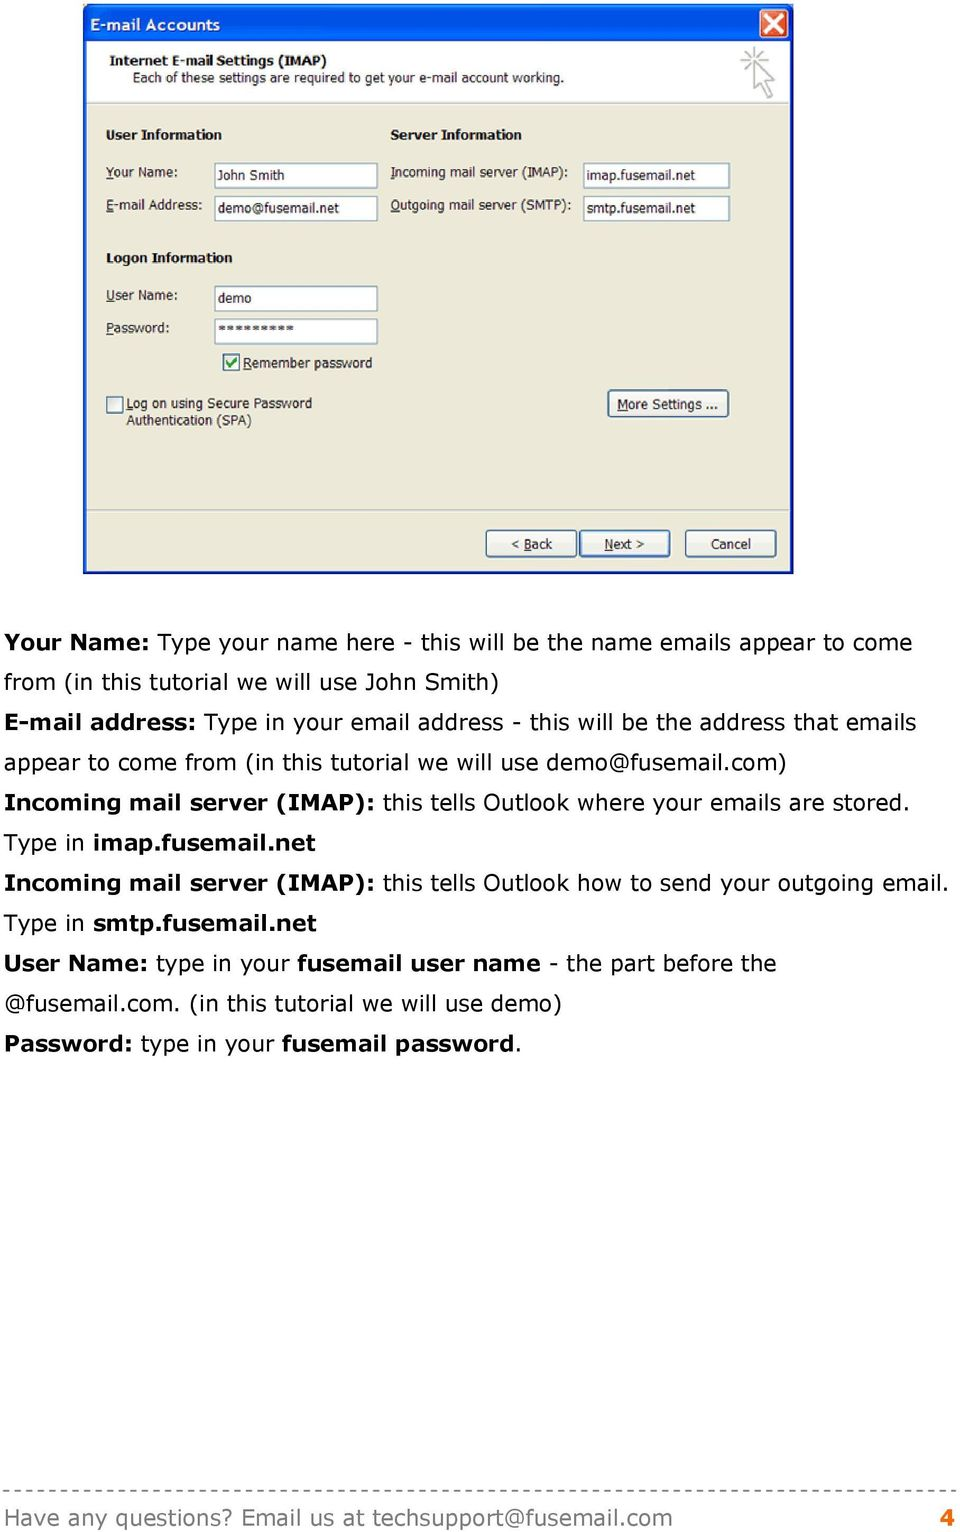 com) Incoming mail server (IMAP): this tells Outlook where your emails are stored. Type in imap.fusemail.